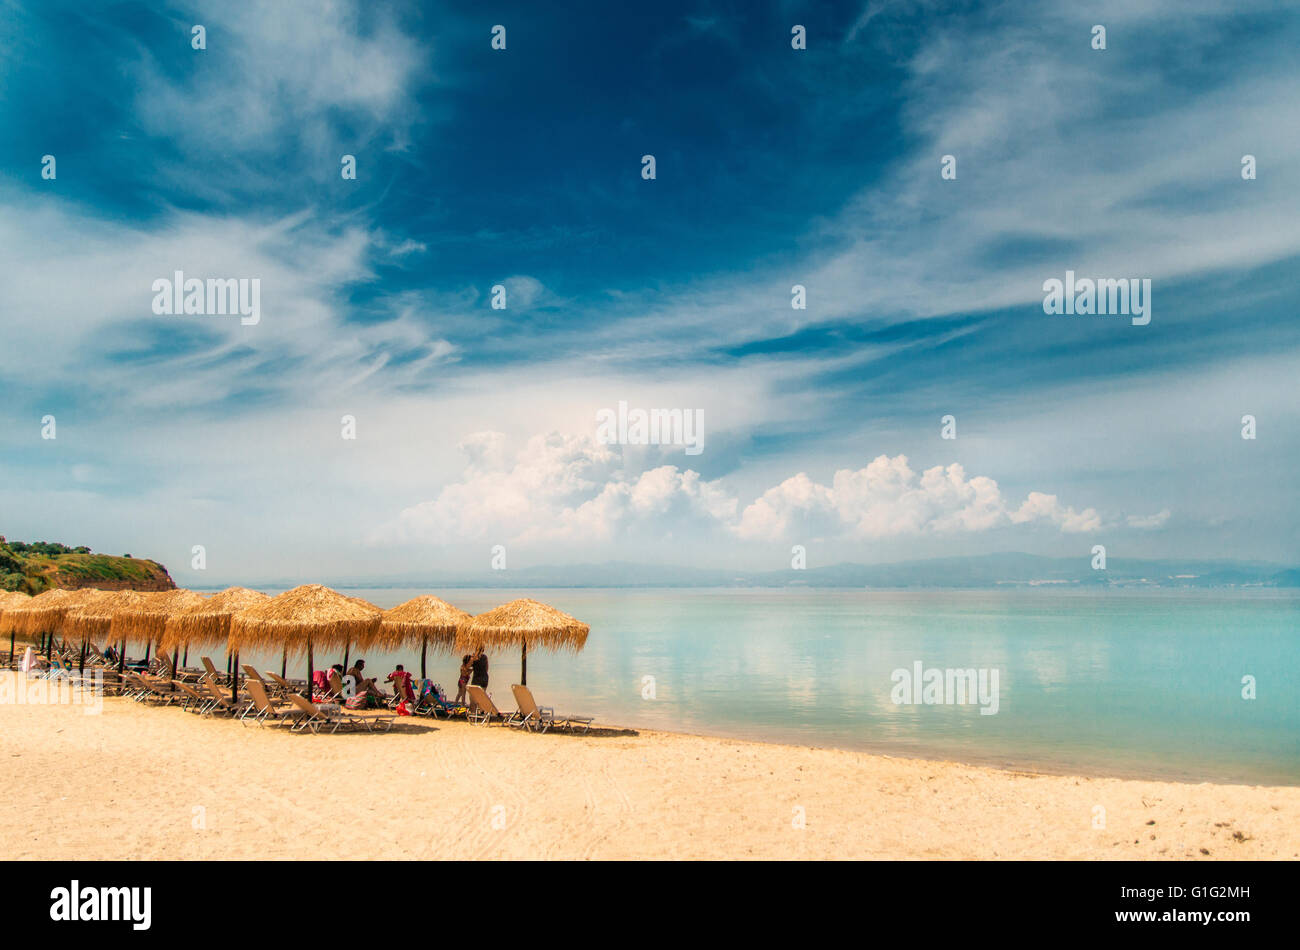 Thatch umbrella, sunbeds on a greek beach and clouds reflections in the turquoise waters of the Aegean Sea, Nea - Stock Image